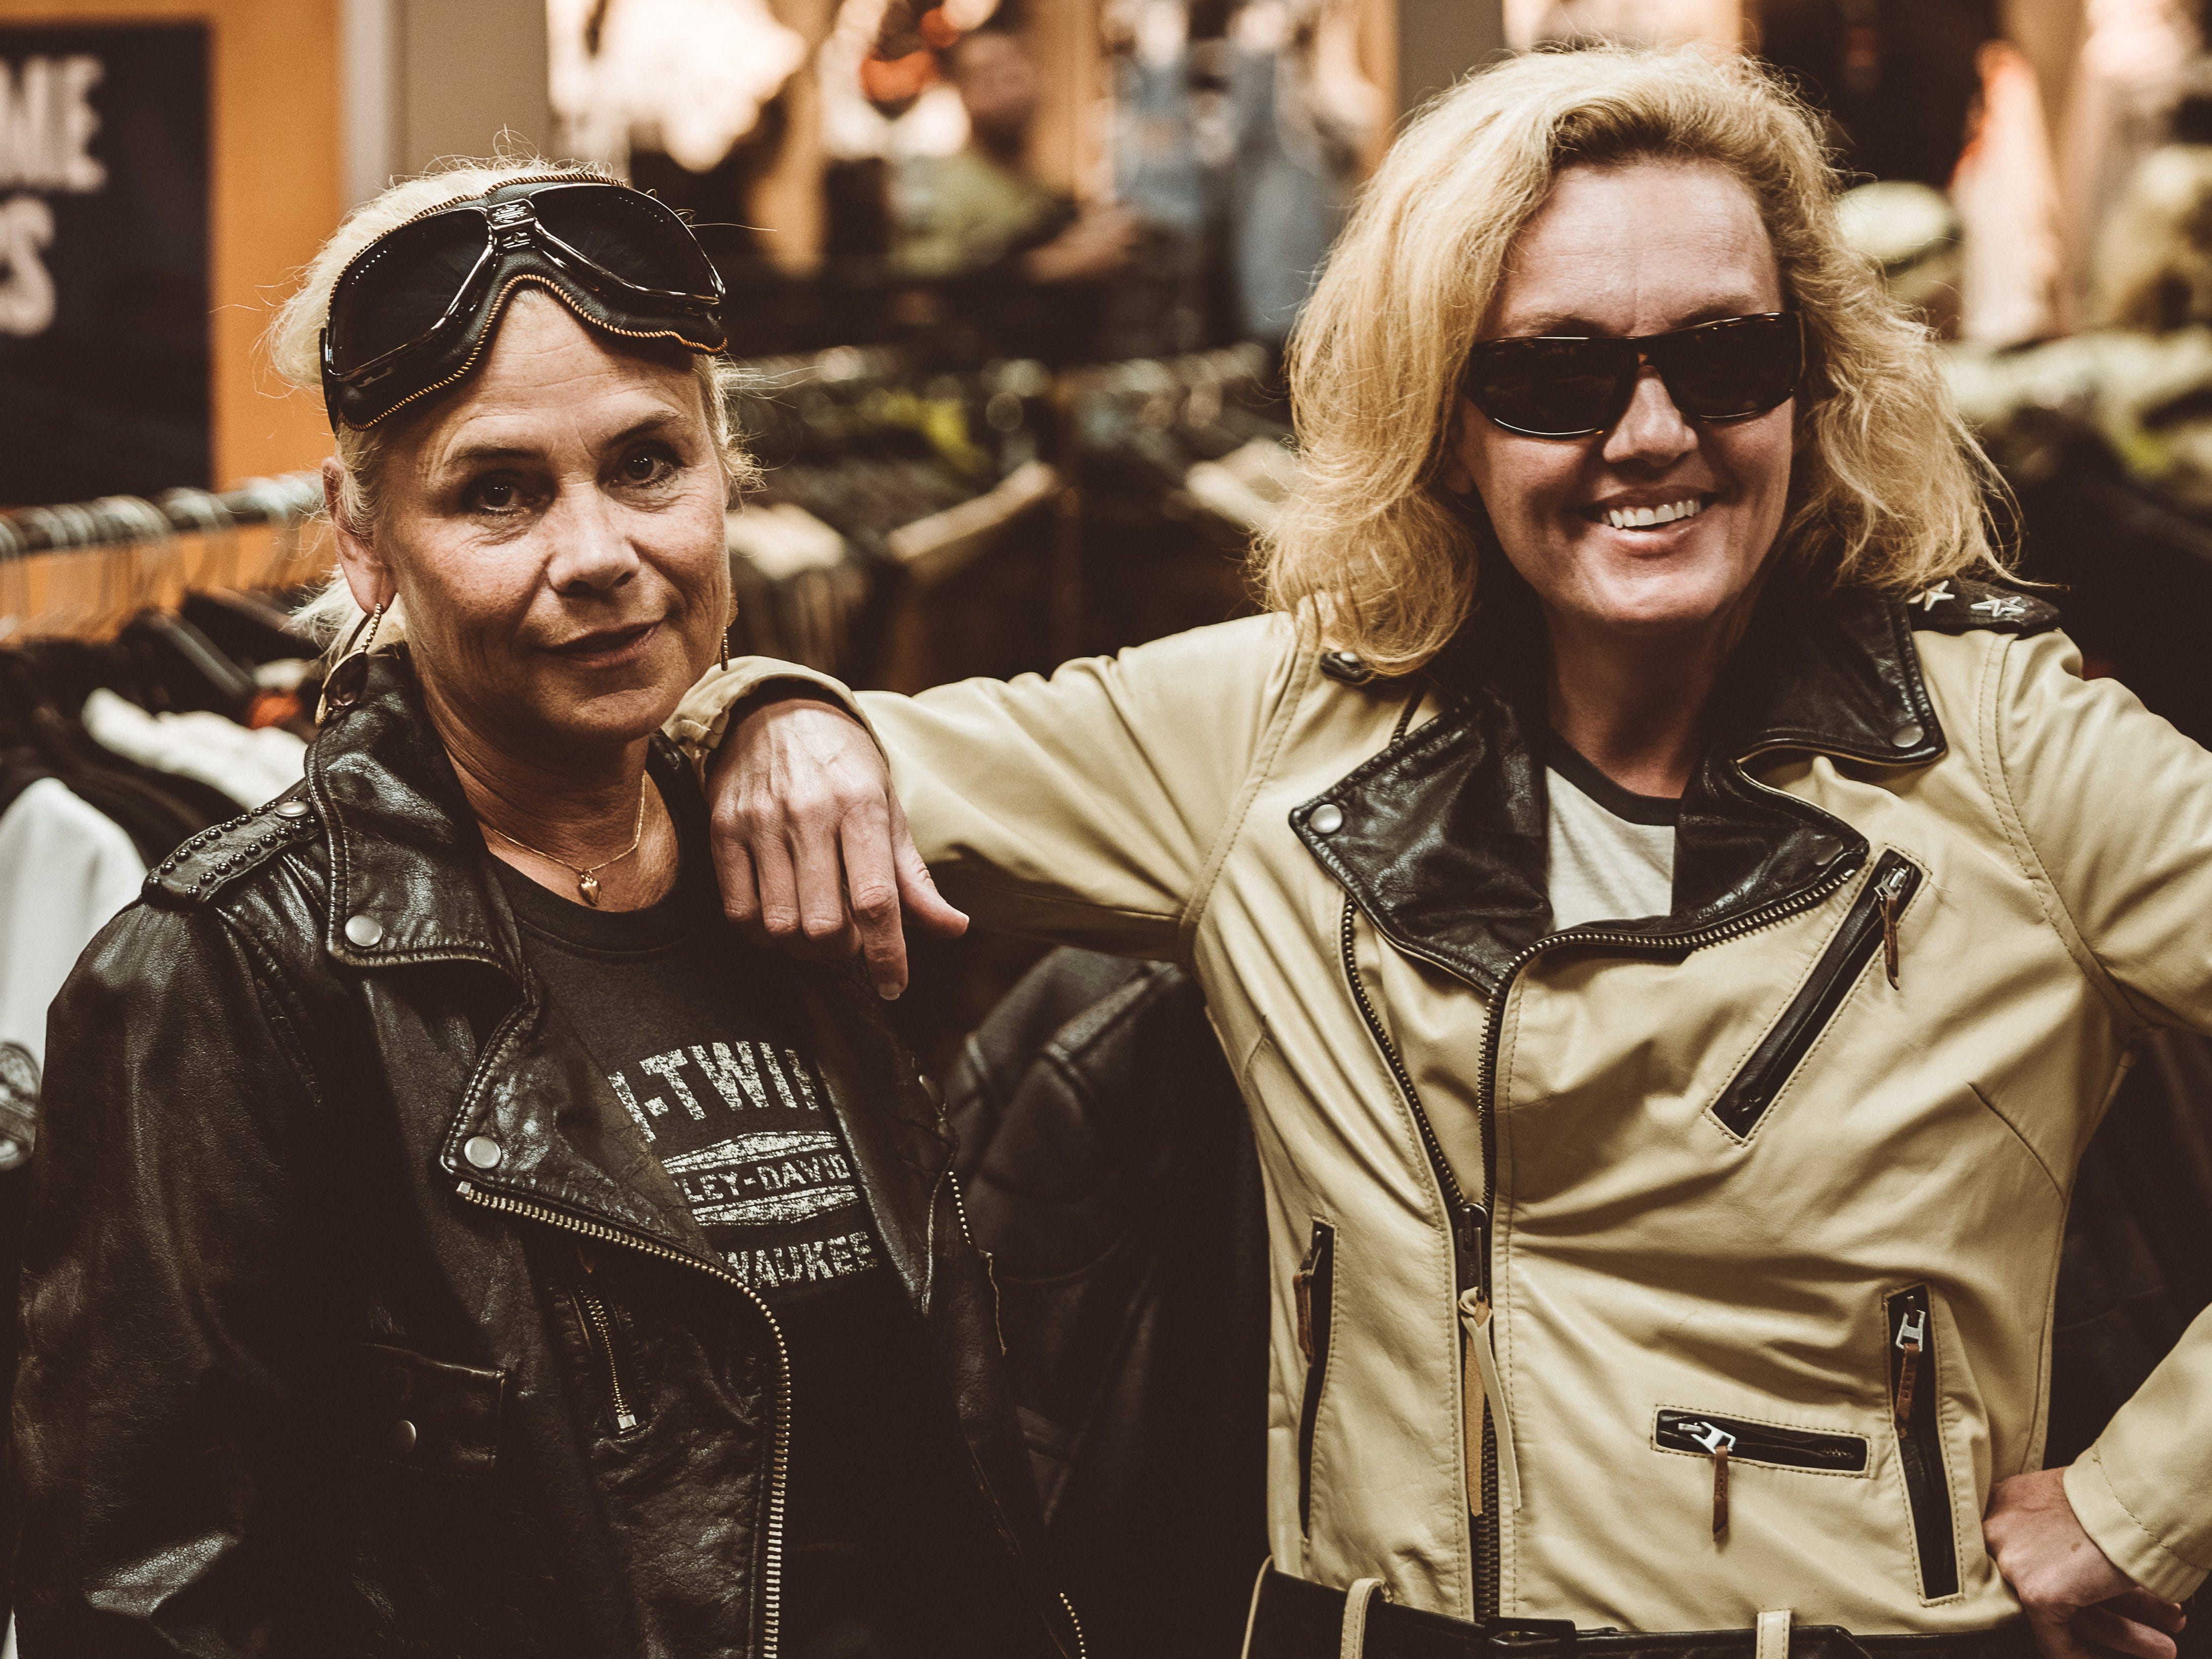 Majsan Bostrom (left) and Amanda Kingsbury were styled by Karen Davidson.